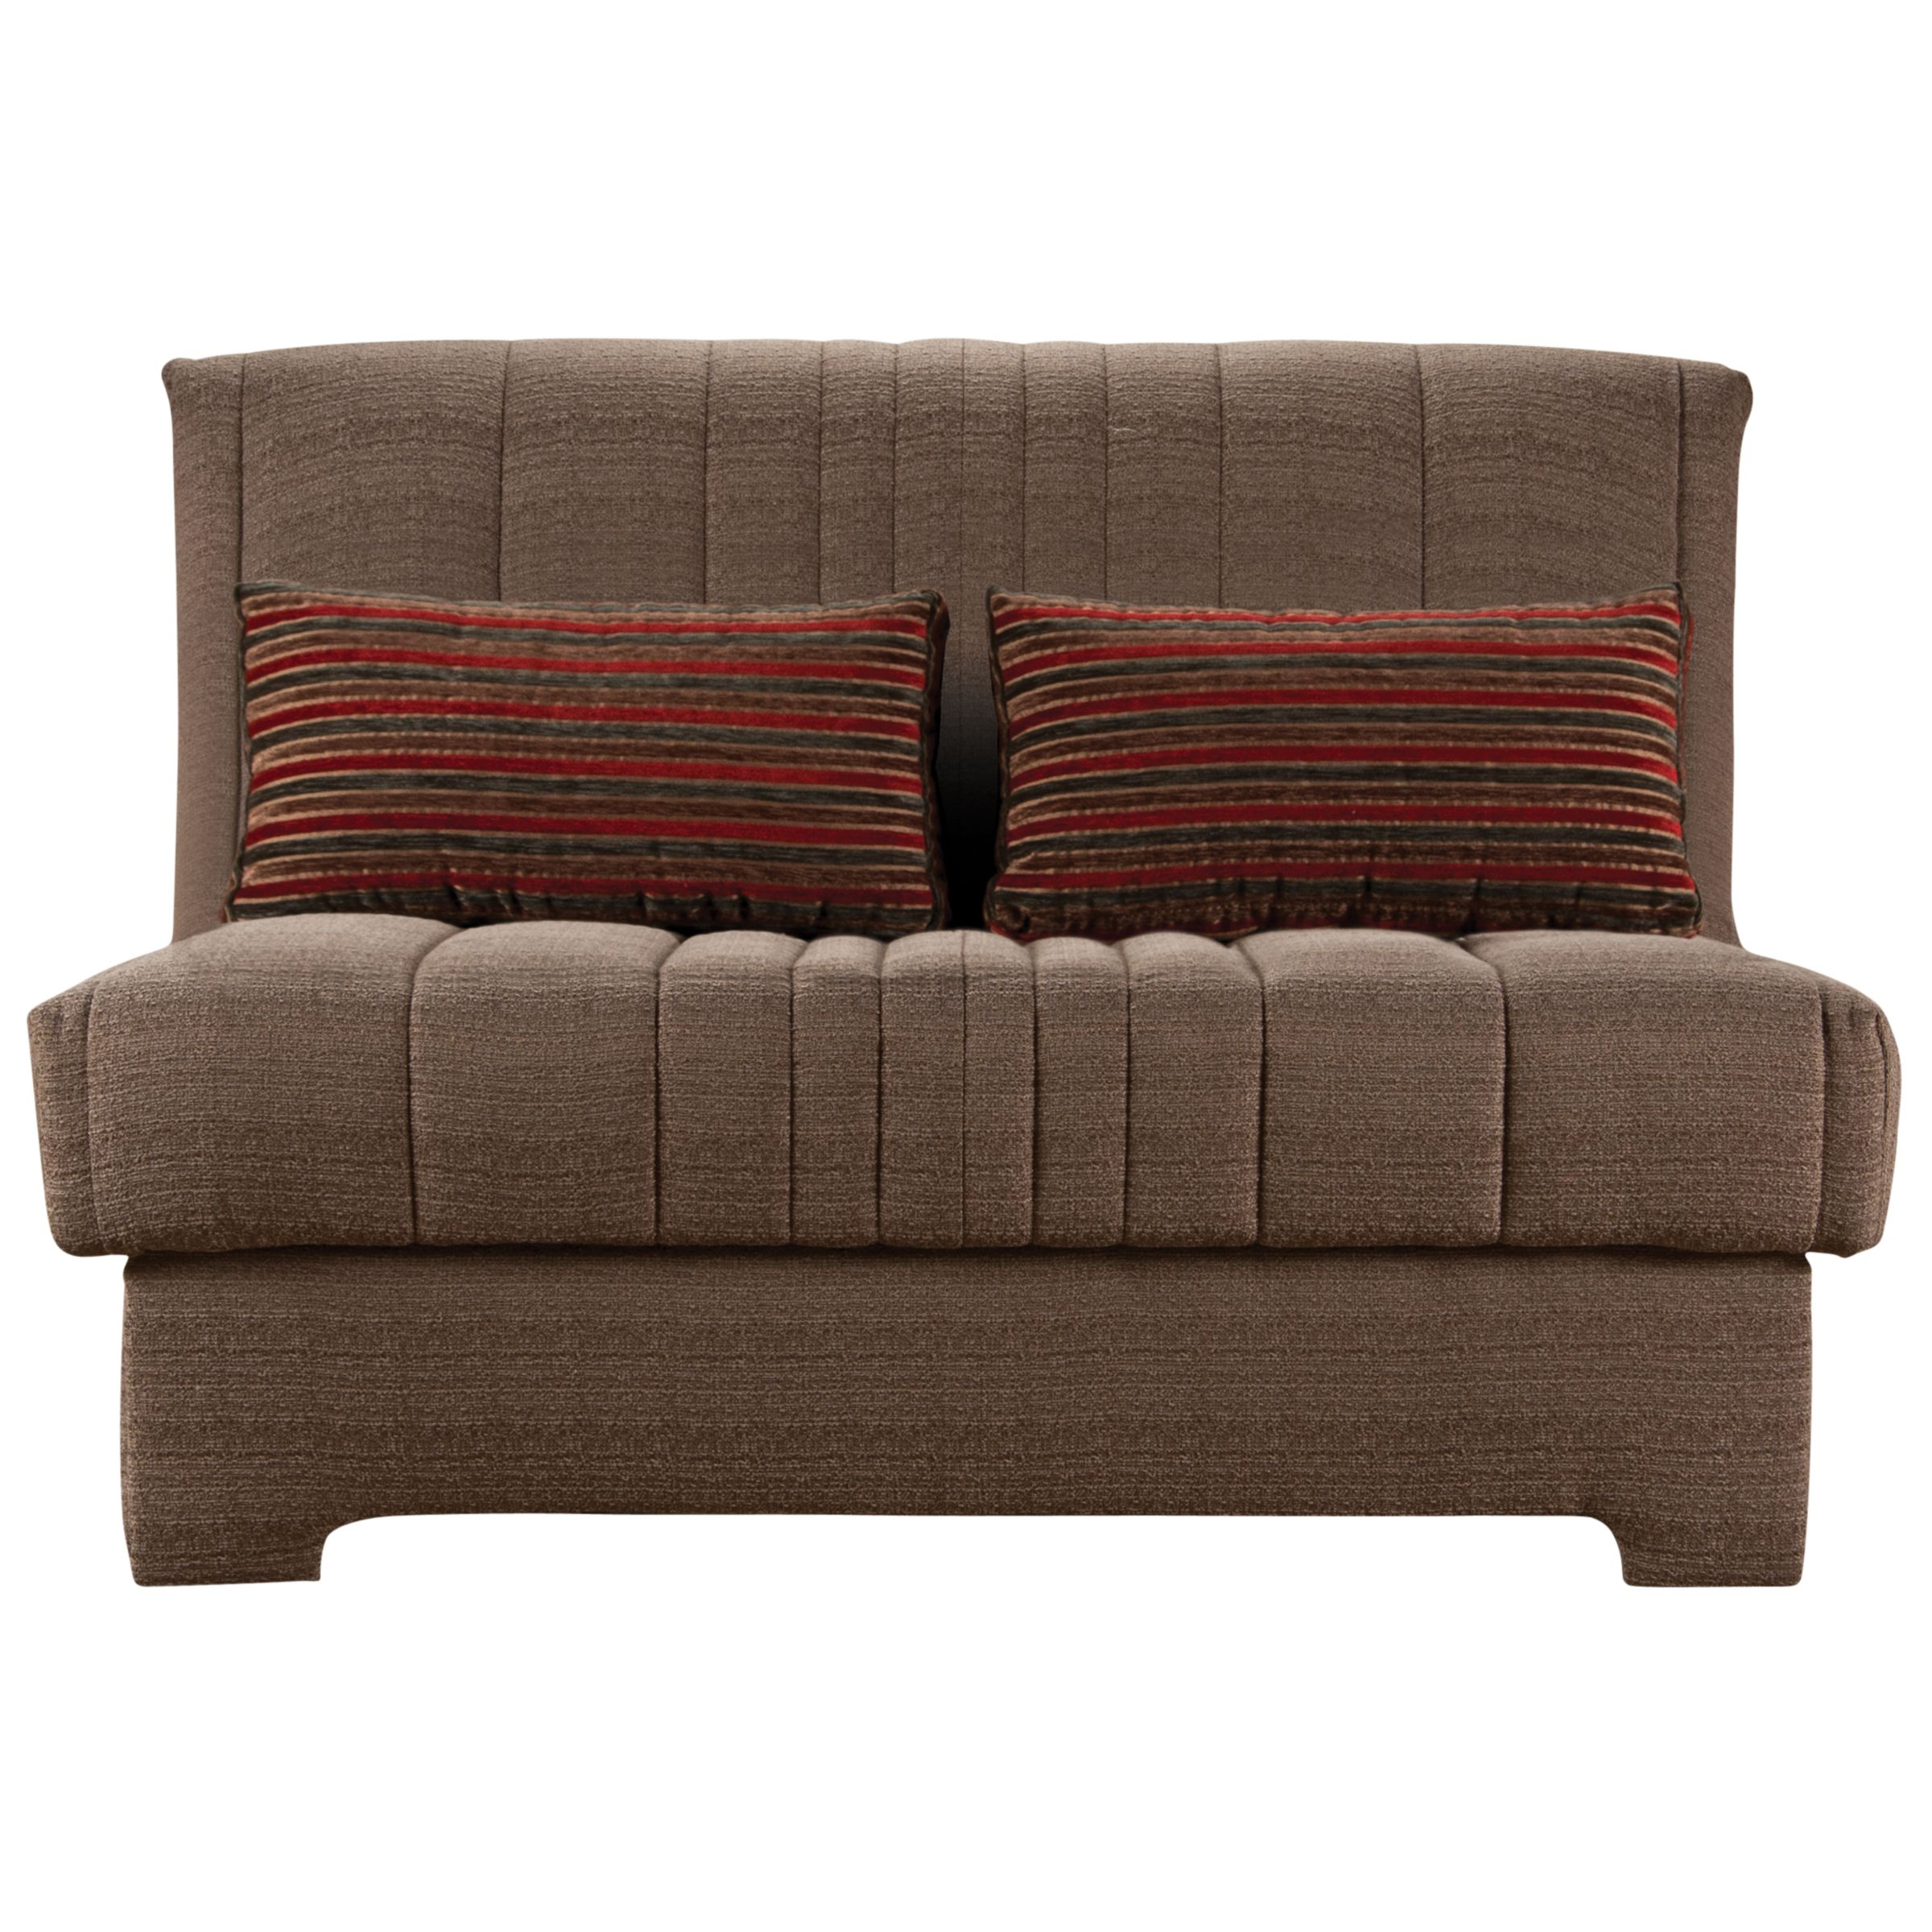 SMALL SOFA BED - Sofa Beds